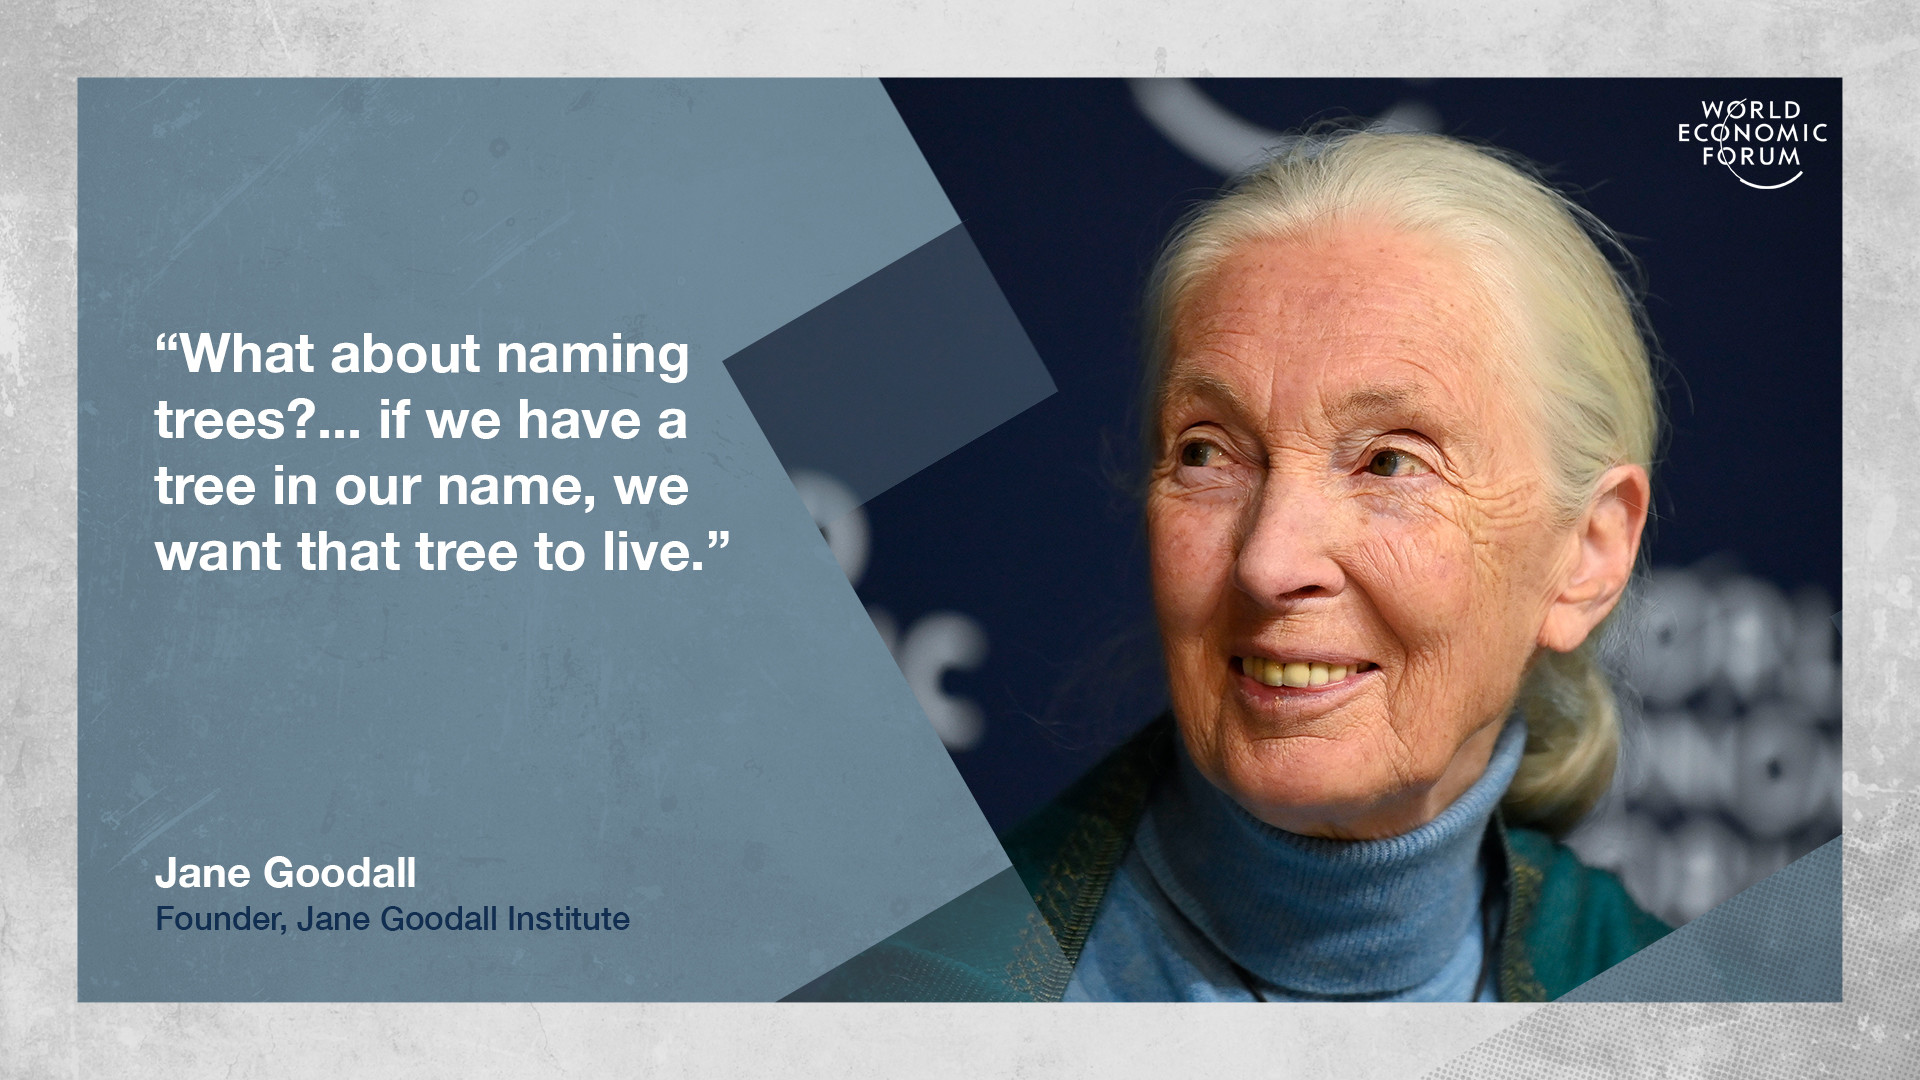 Jane Goodall on saving trees at Davos